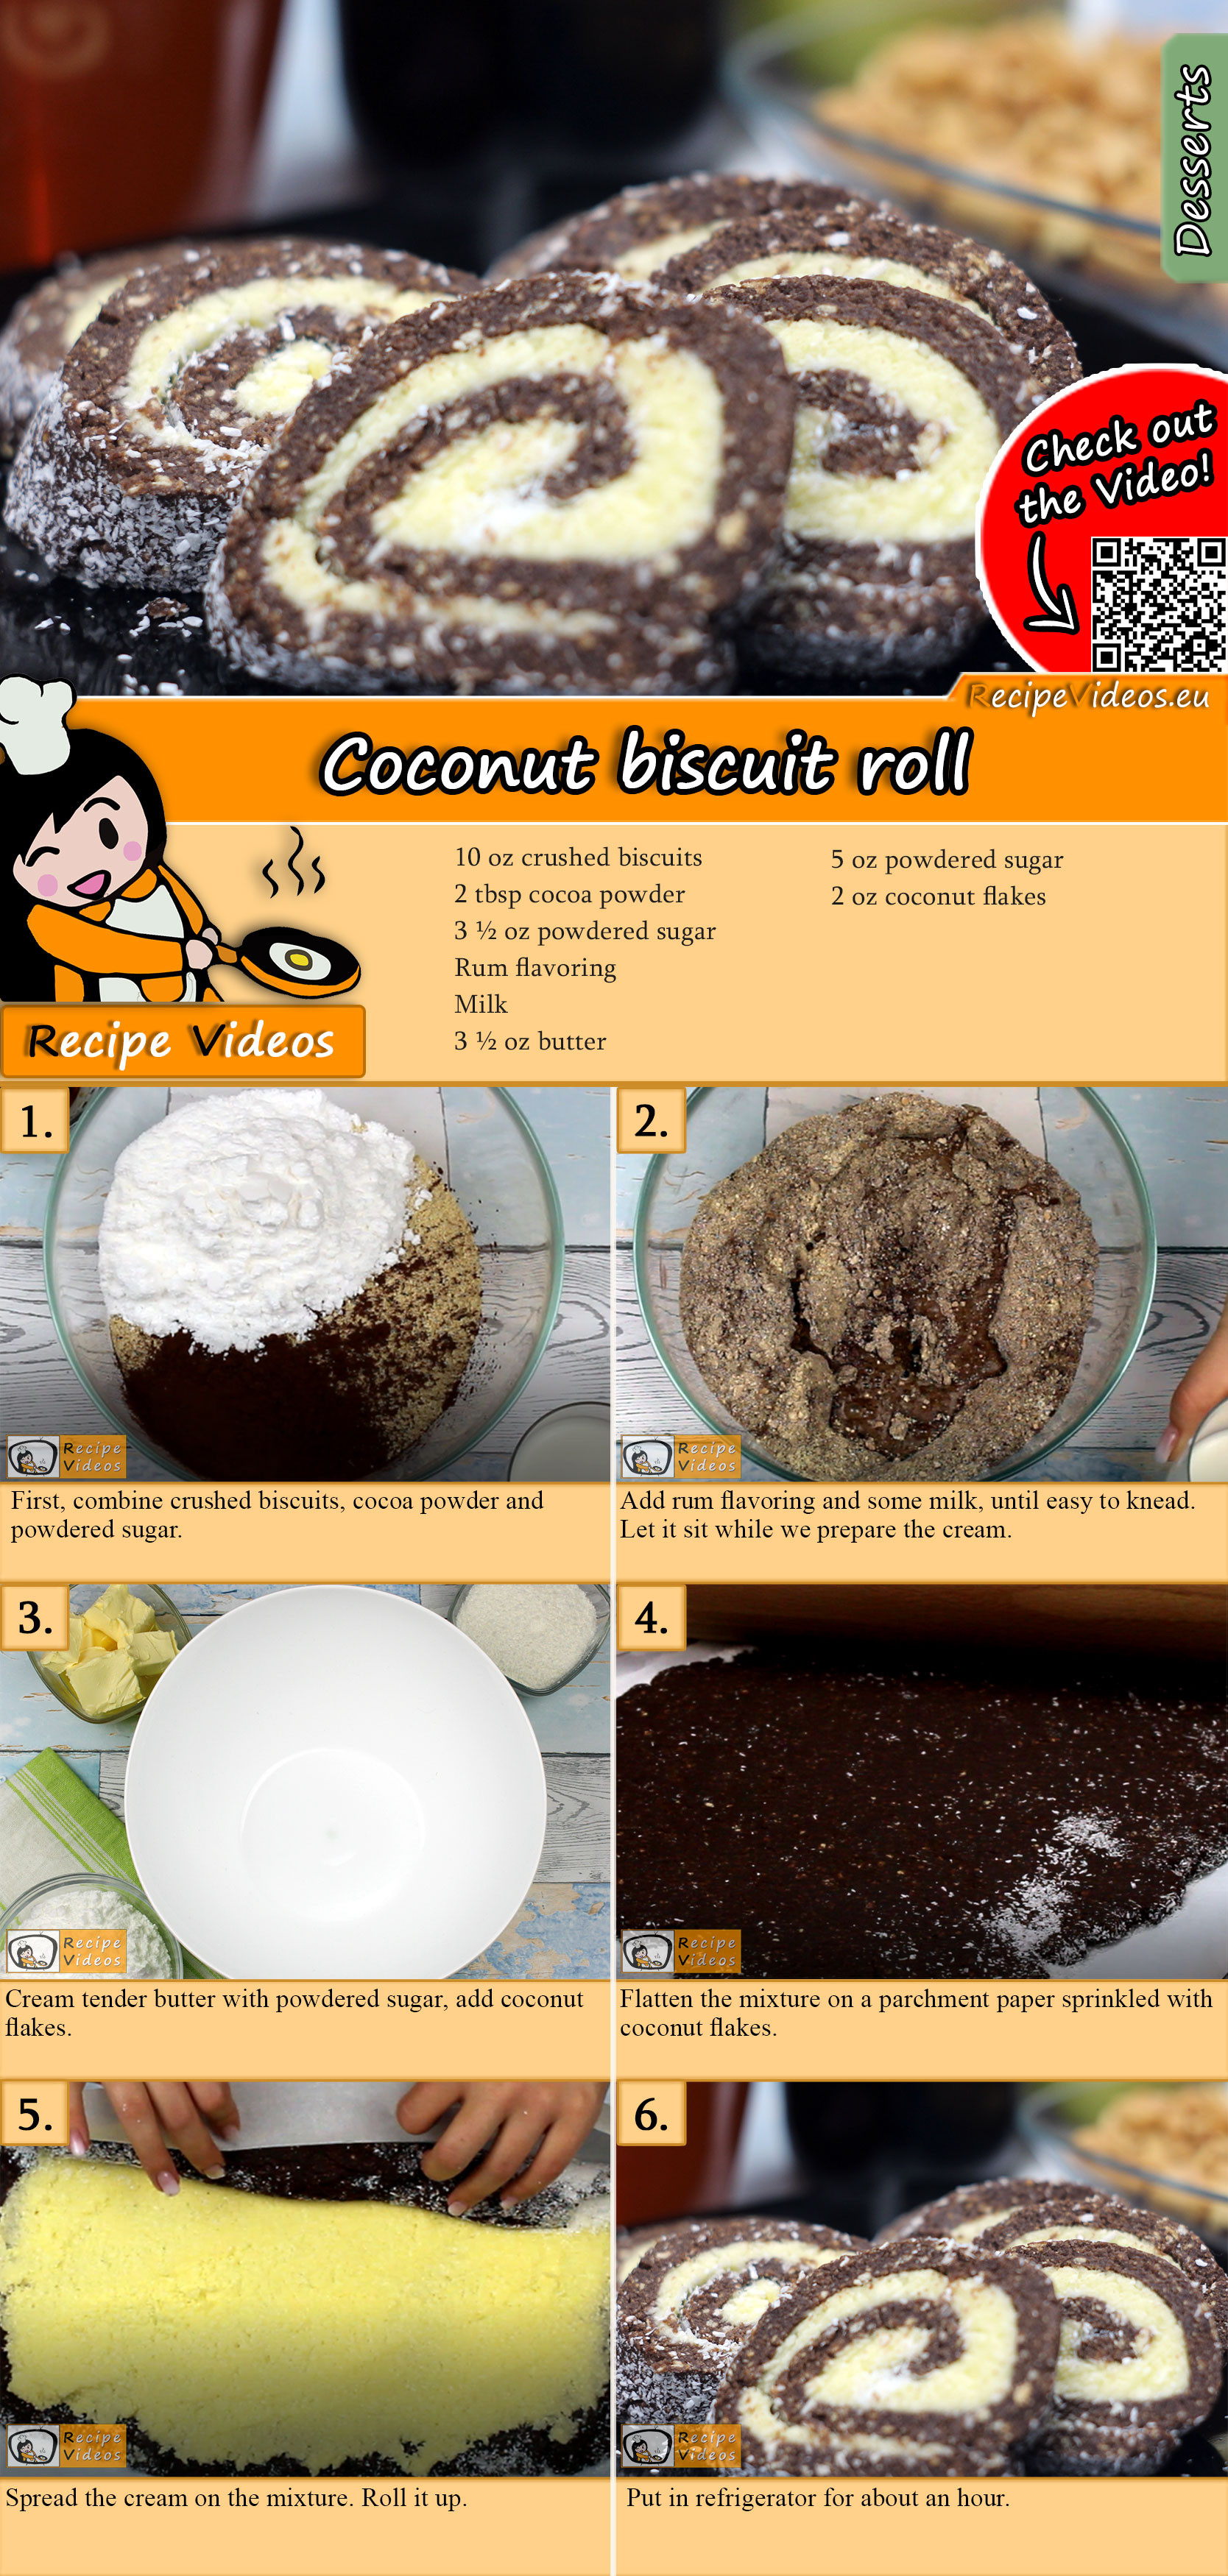 Coconut biscuit roll recipe with video